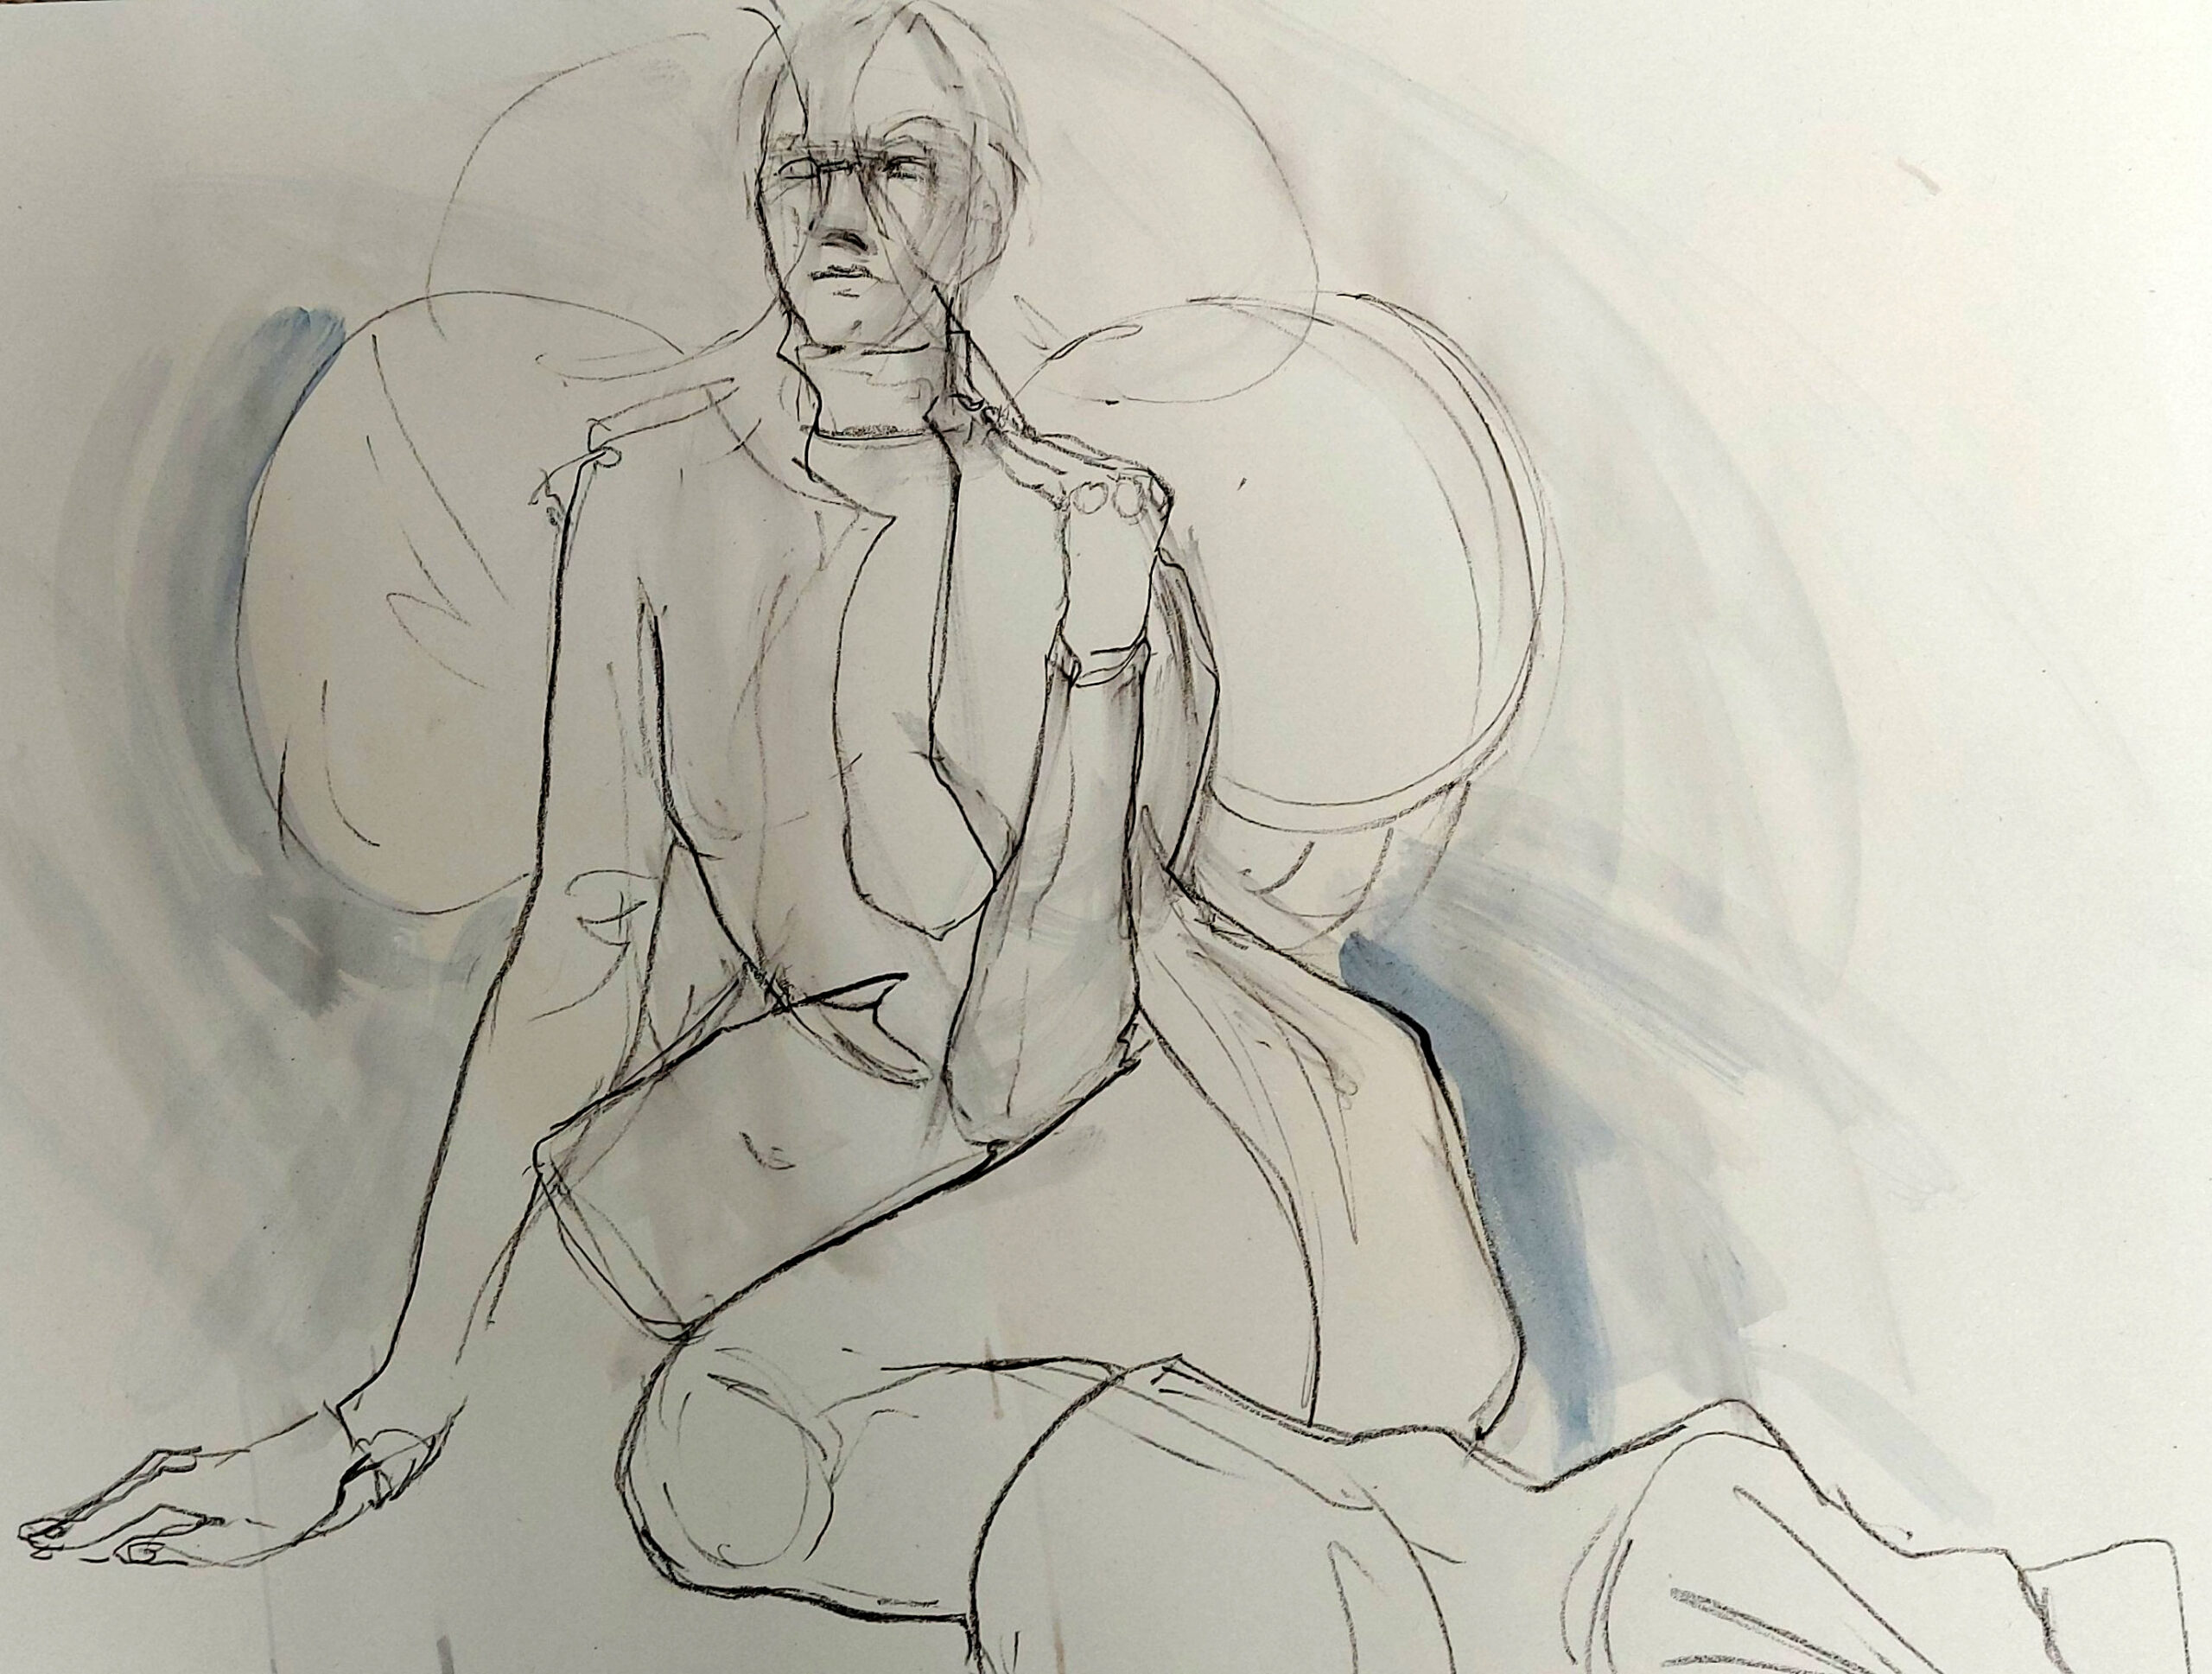 Drawing Cabaret Couture online session with fashion by @johanneswarnke. (Model Janet Myer, sets and direction by Matthew Lawrence). Five-minute poses in graphite and ink.